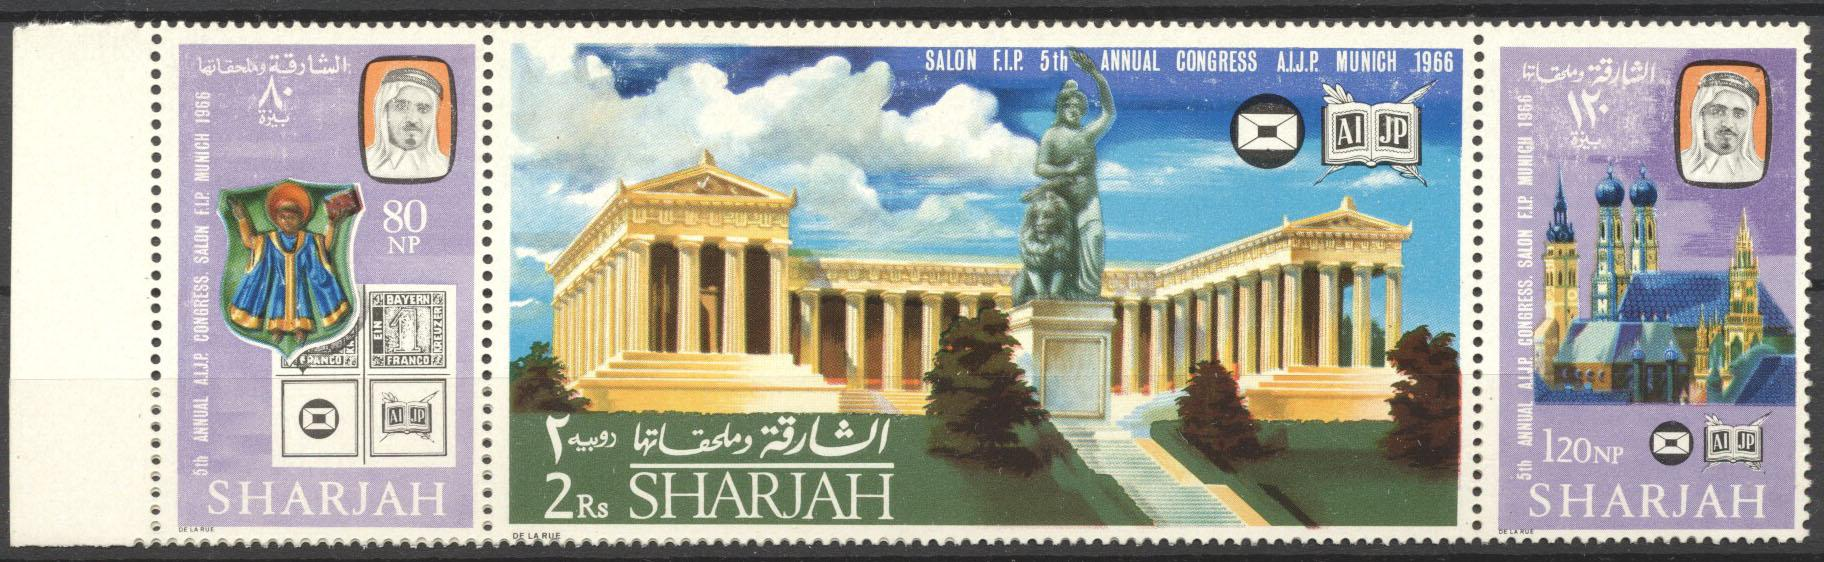 Stamps with Architecture, Statue from Sharjah (image for product #142446)